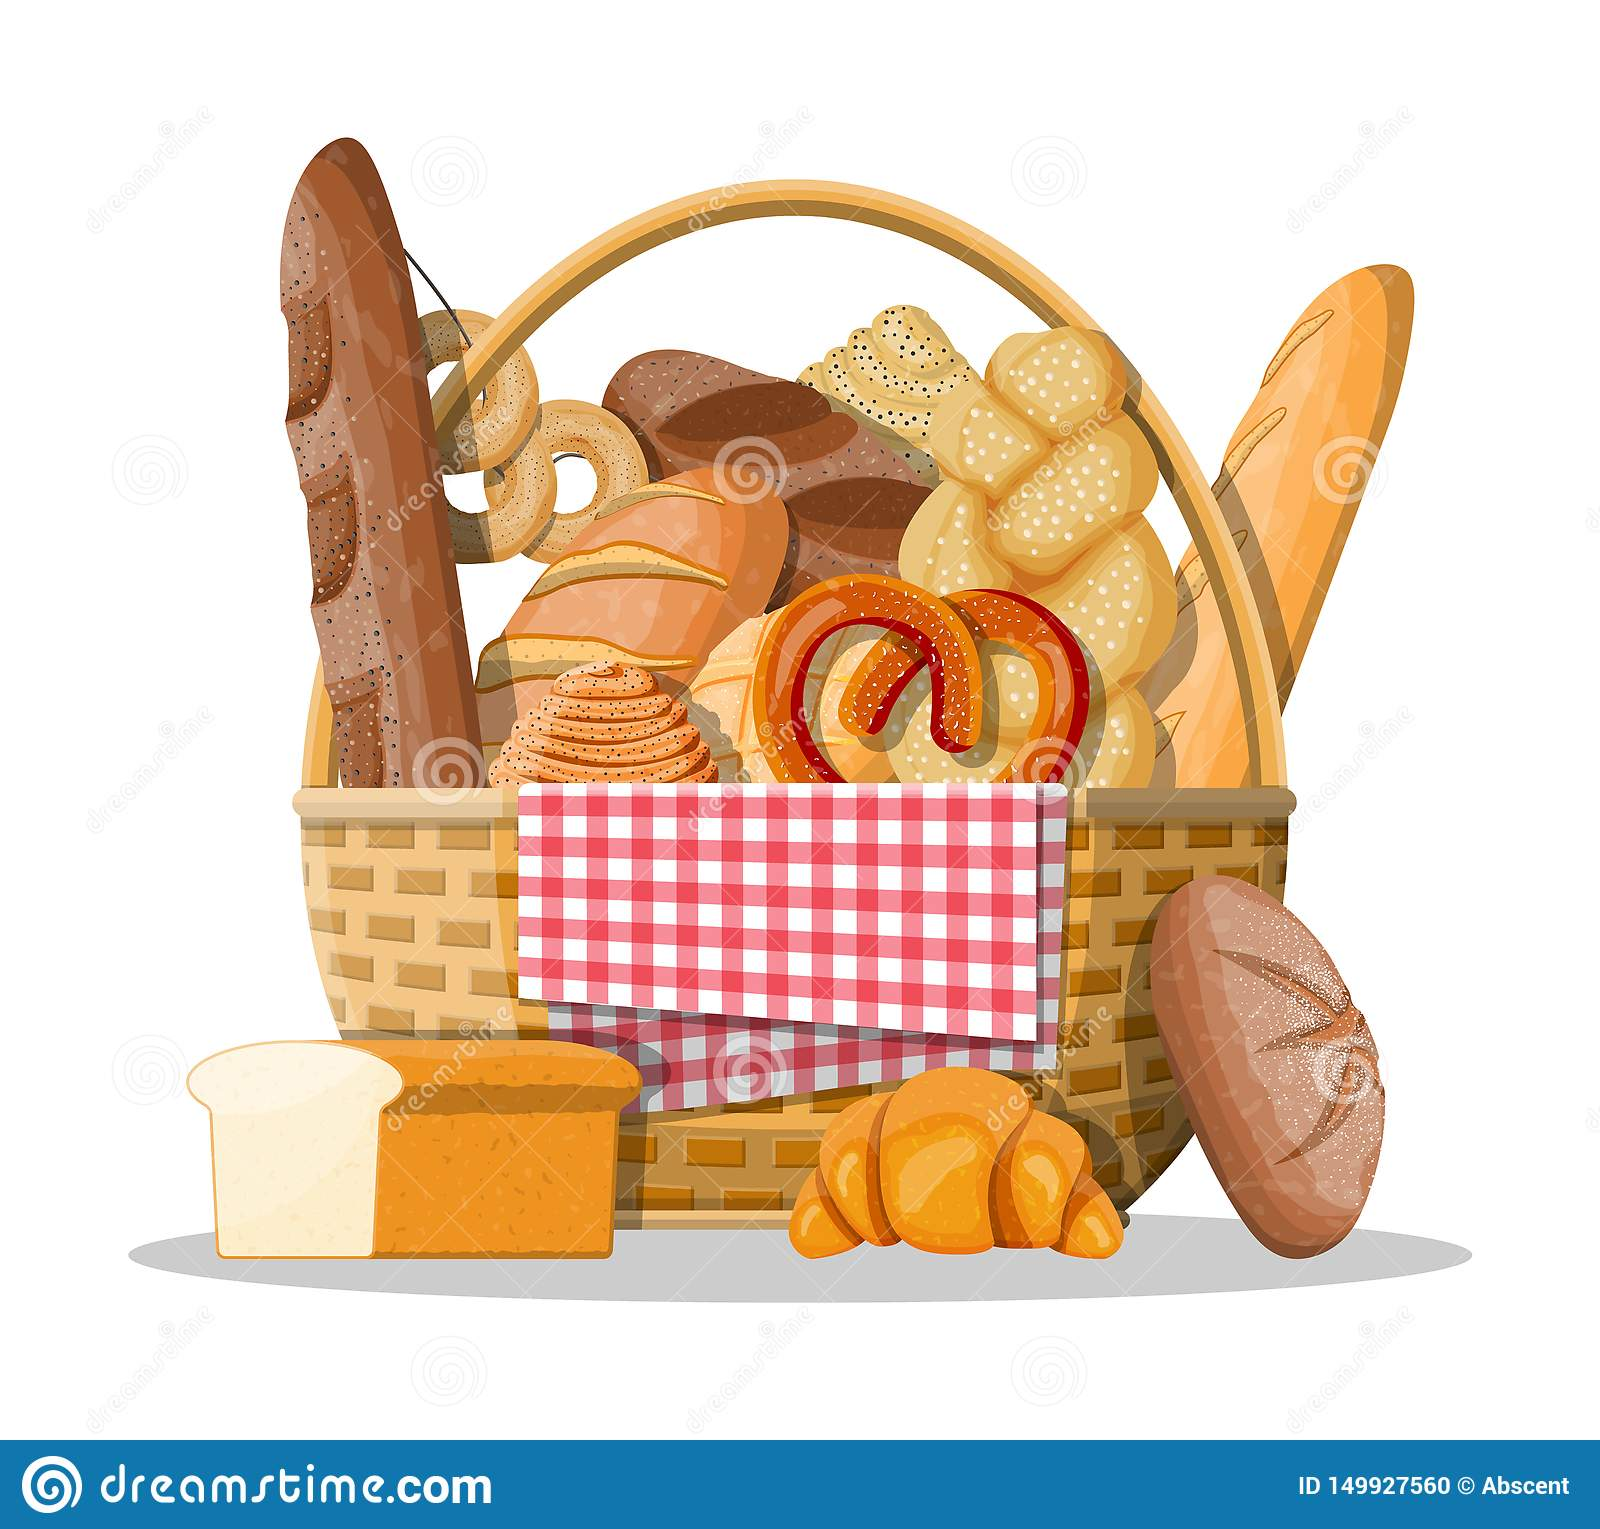 Bread icons and wicker basket.